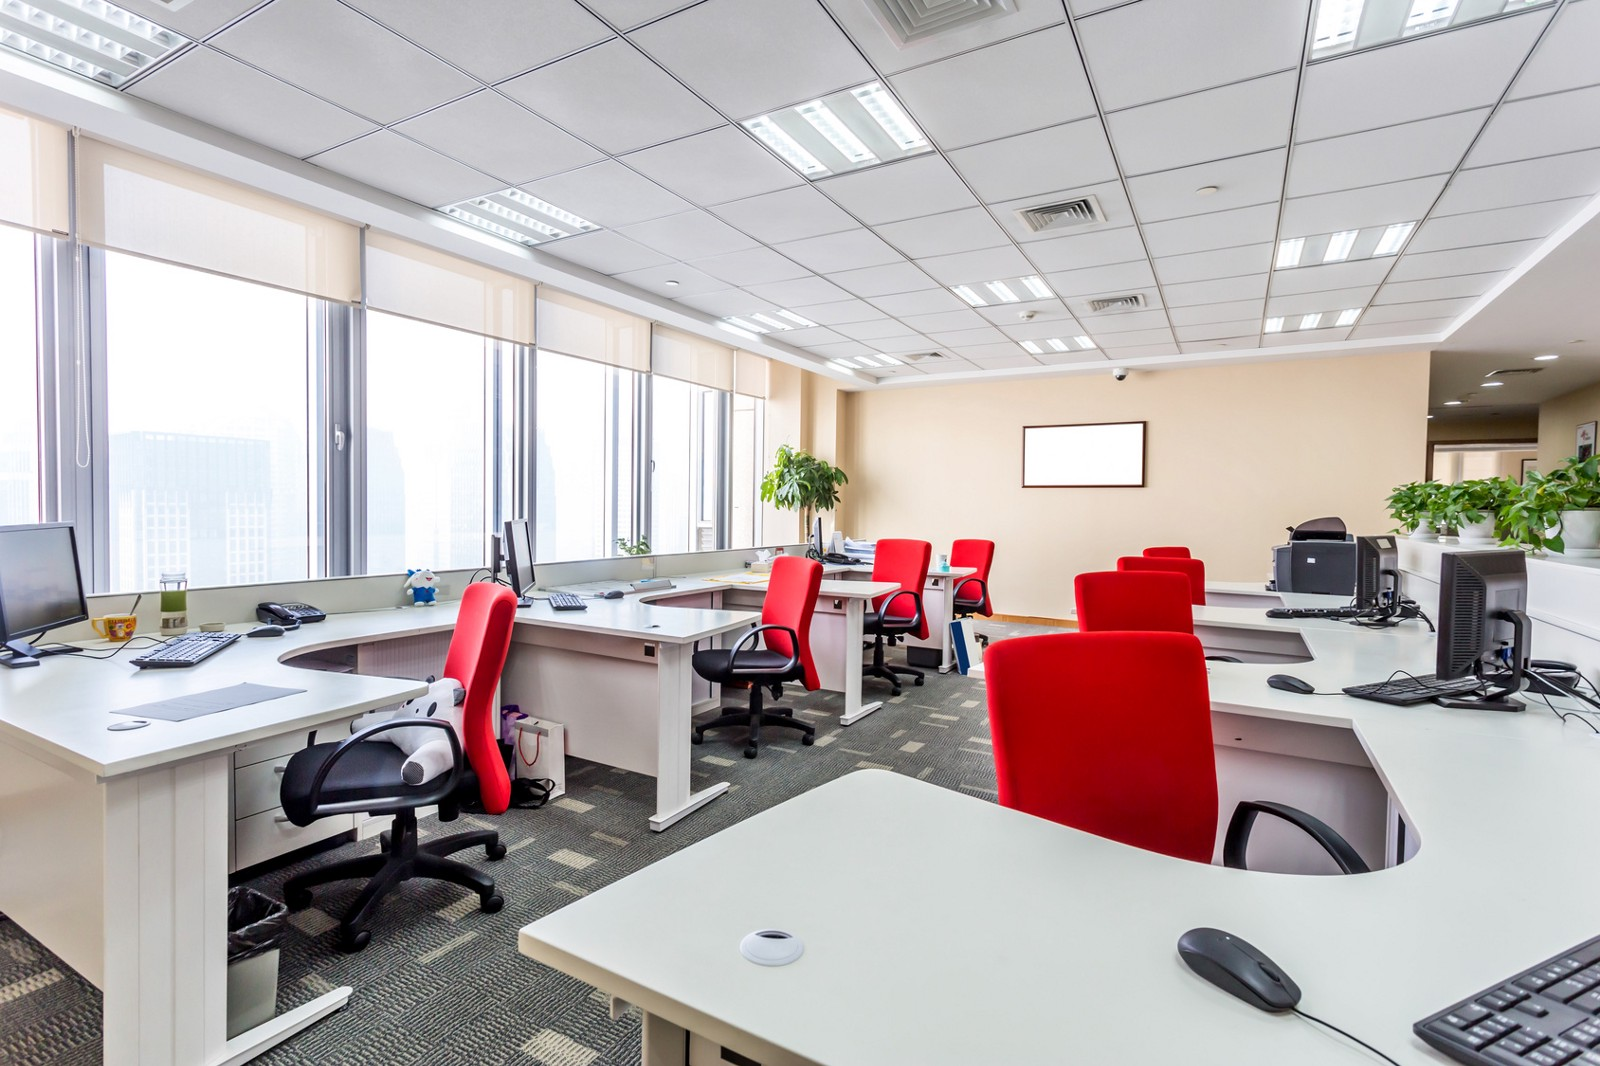 Office interiors photos Civil Engineering Office High Grade Equipment Est Important Reasons To Make The Office Interiors Interesting